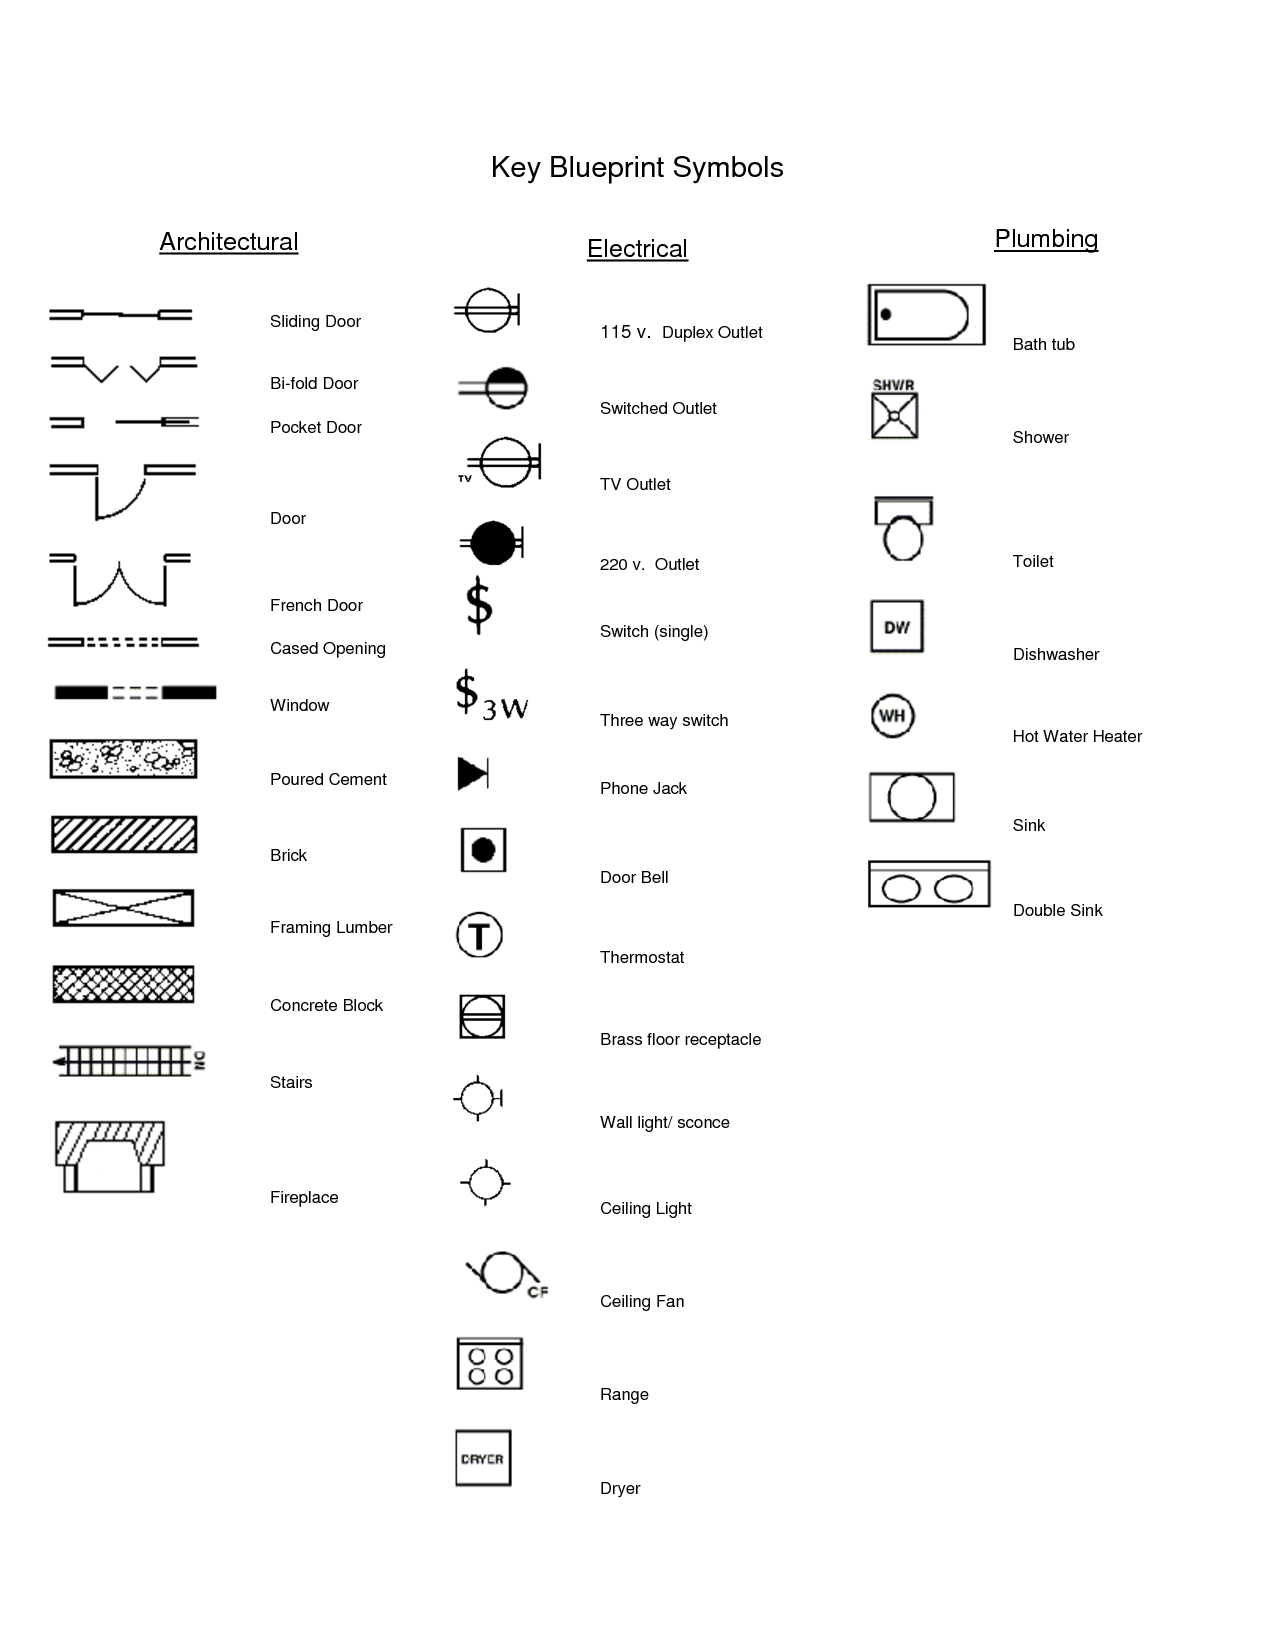 medium resolution of new electrical symbols for outlet diagram wiringdiagram diagramming diagramm visuals